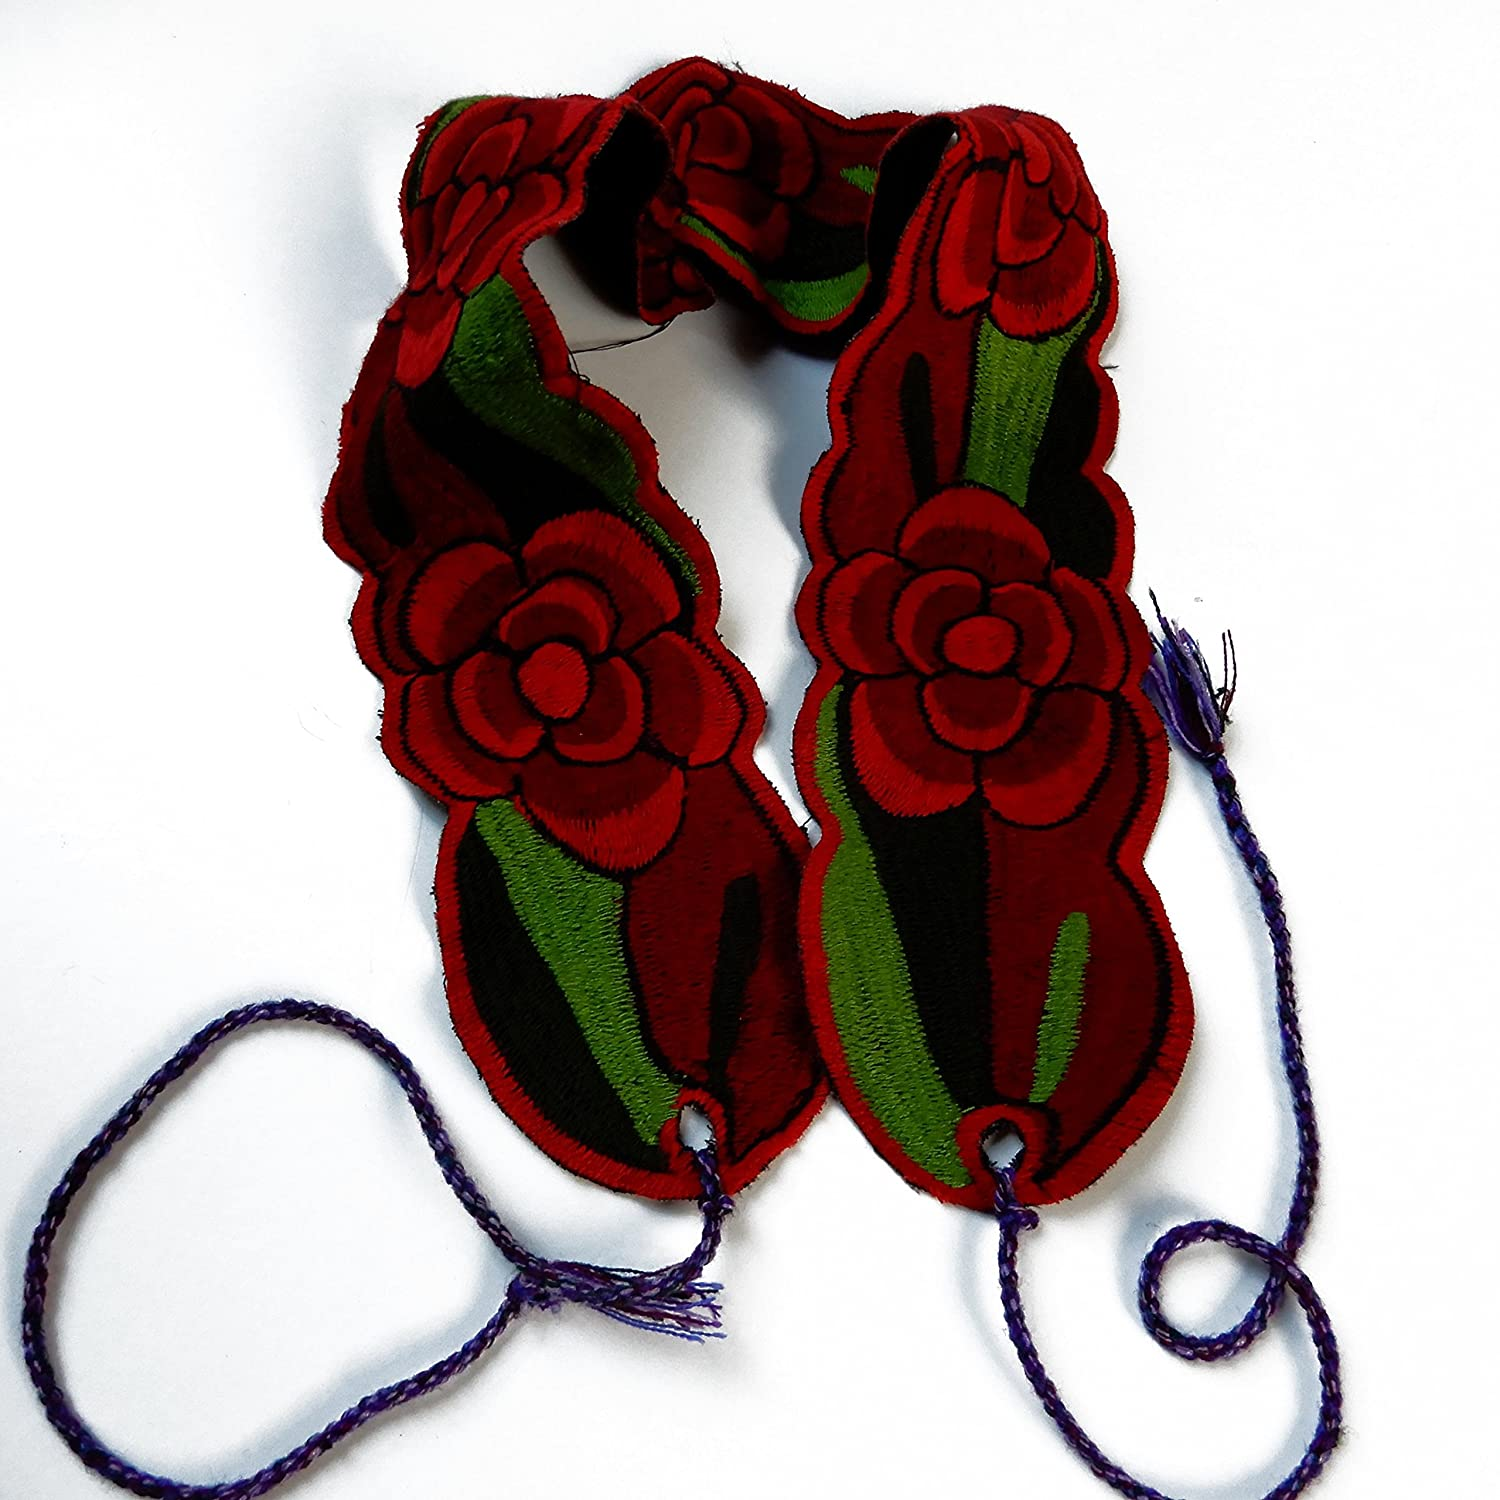 Traditional Handmade Colorful Dark Red Floral Mexican Belt Sash Tie - DeluxeAdultCostumes.com